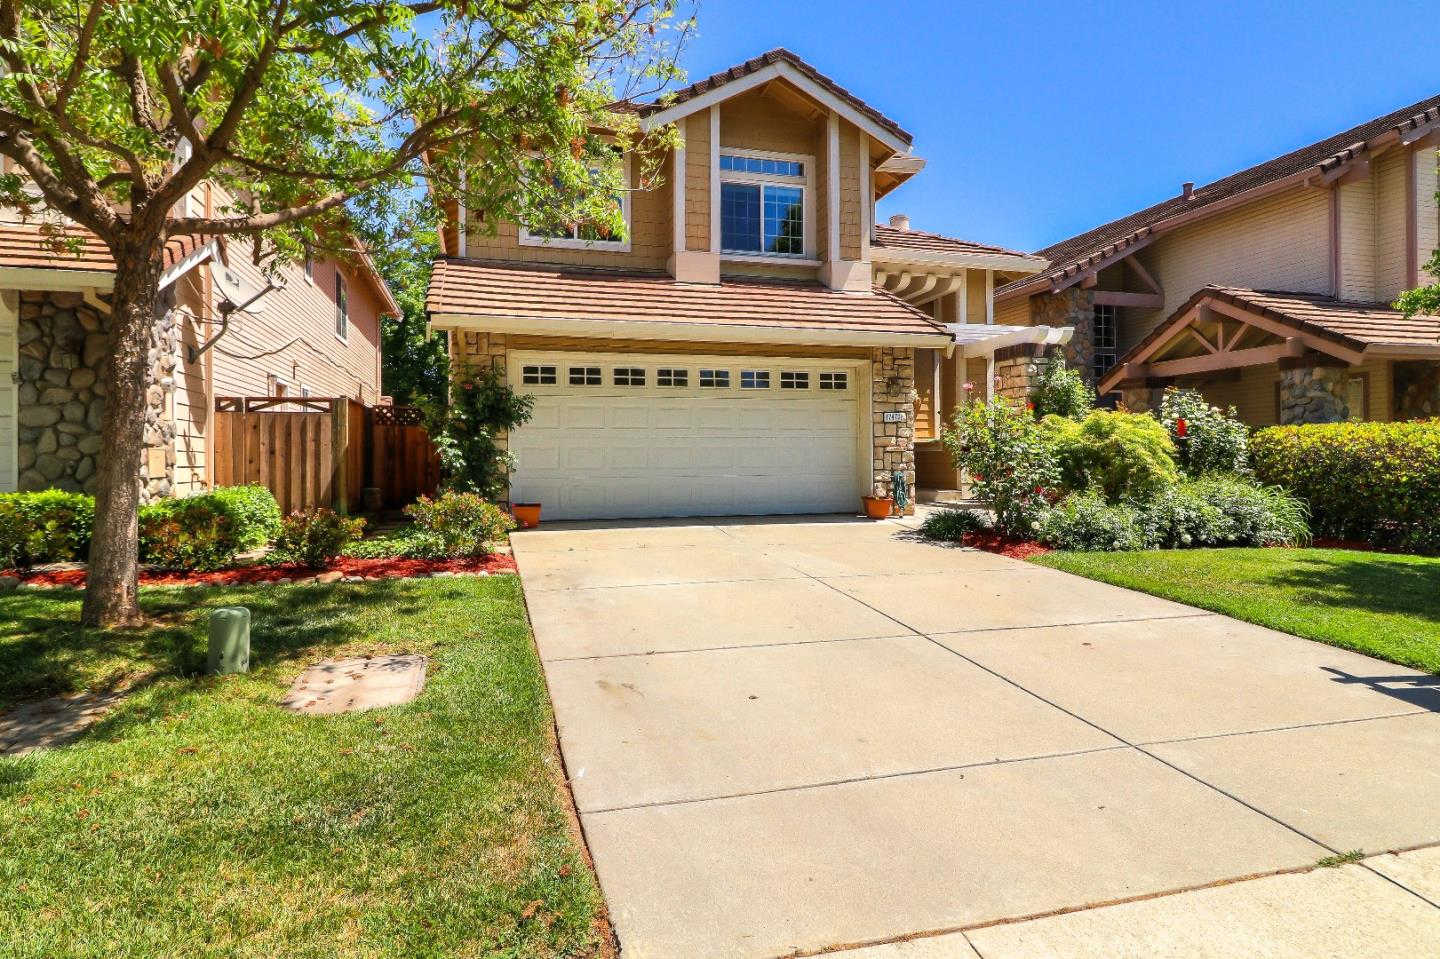 17470 Montoya Circle, Morgan Hill, CA 95037 now has a new price of $899,888!